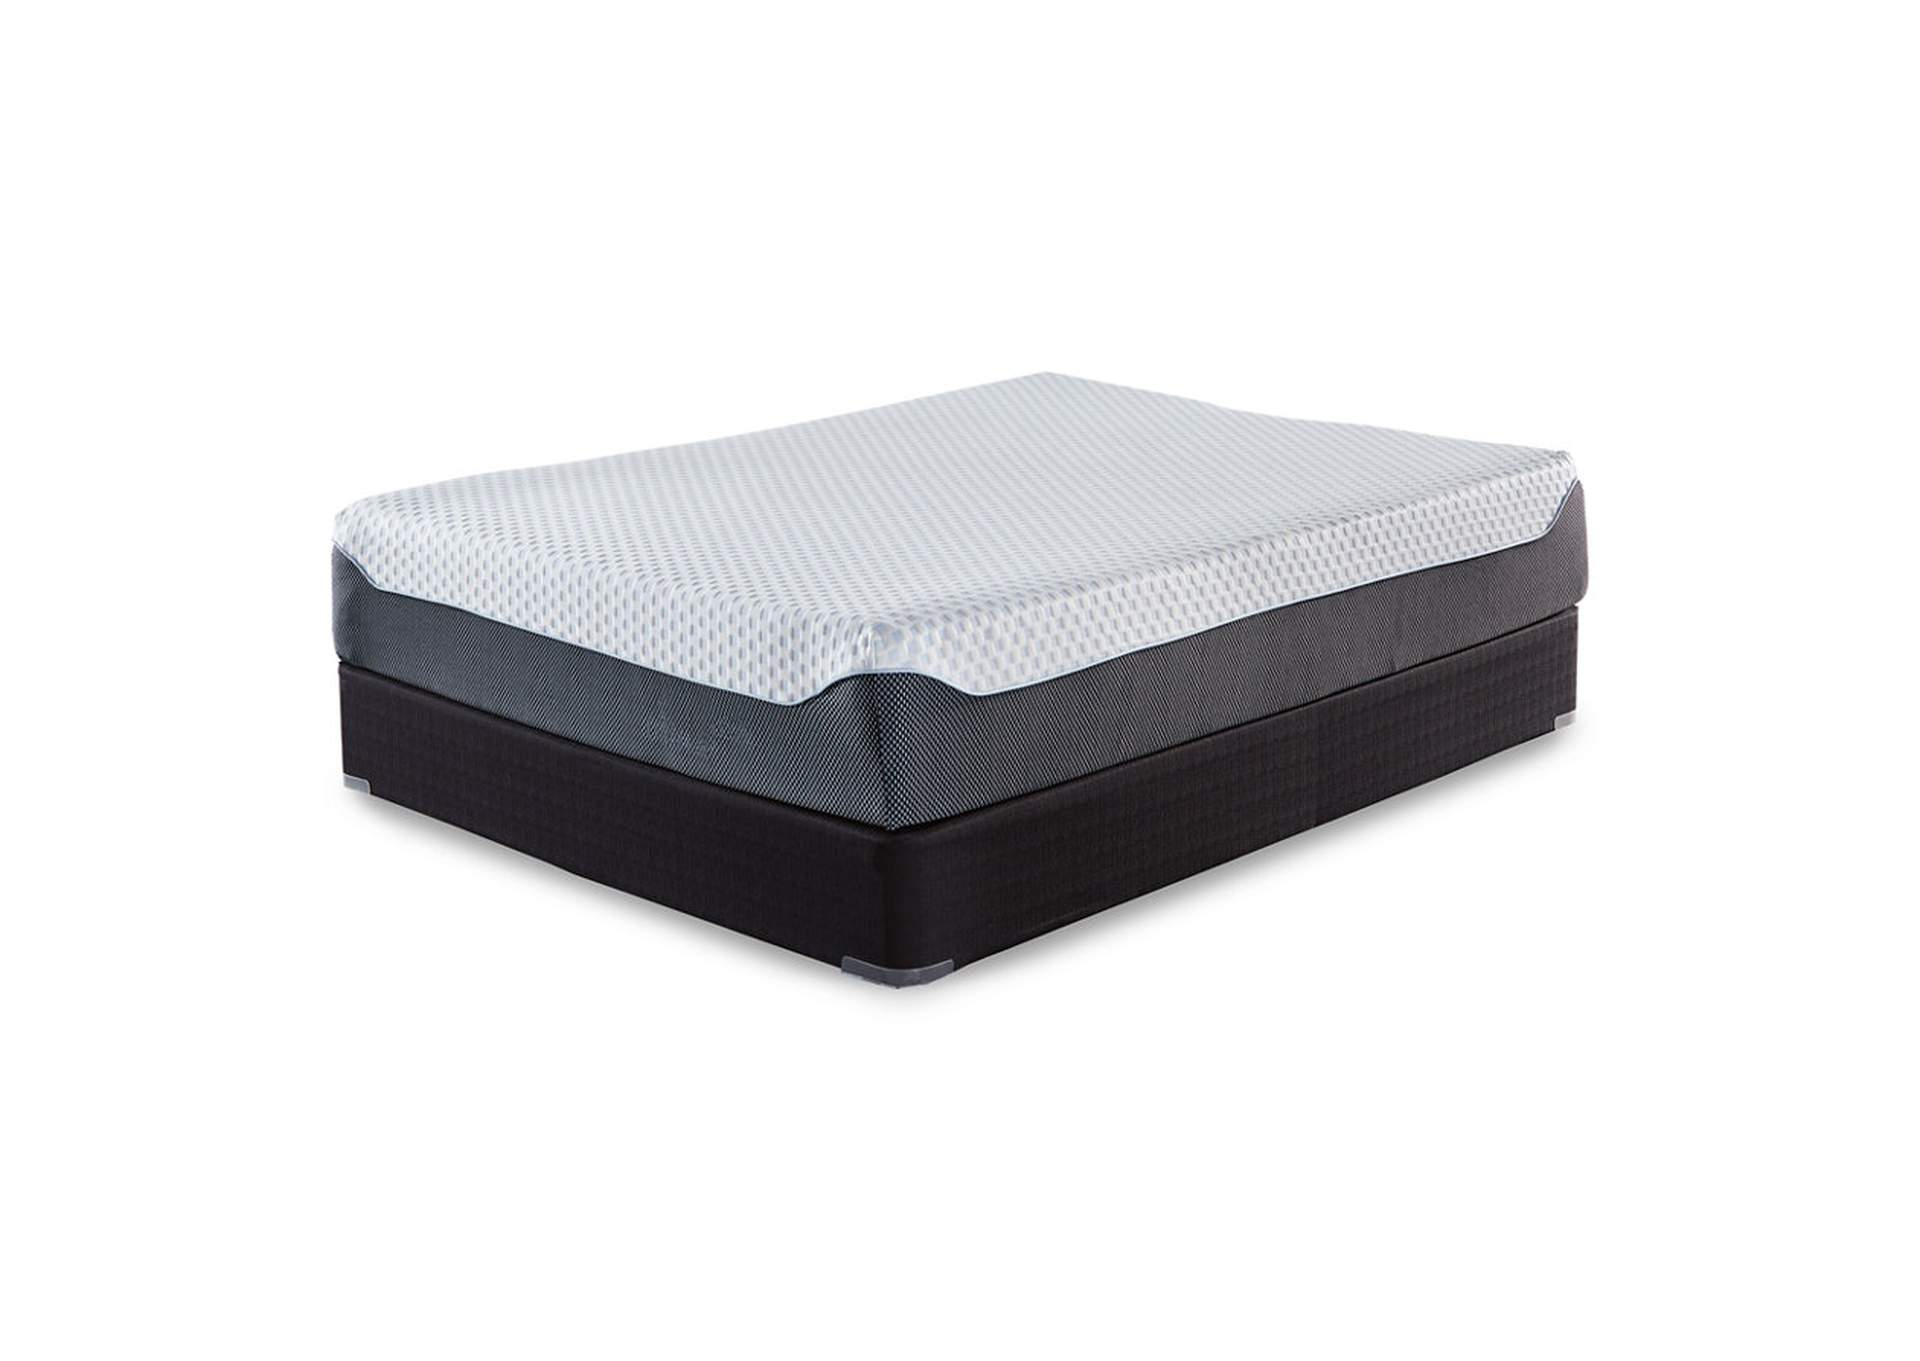 12 Inch Chime Elite Memory Foam King Mattress,Sierra Sleep by Ashley